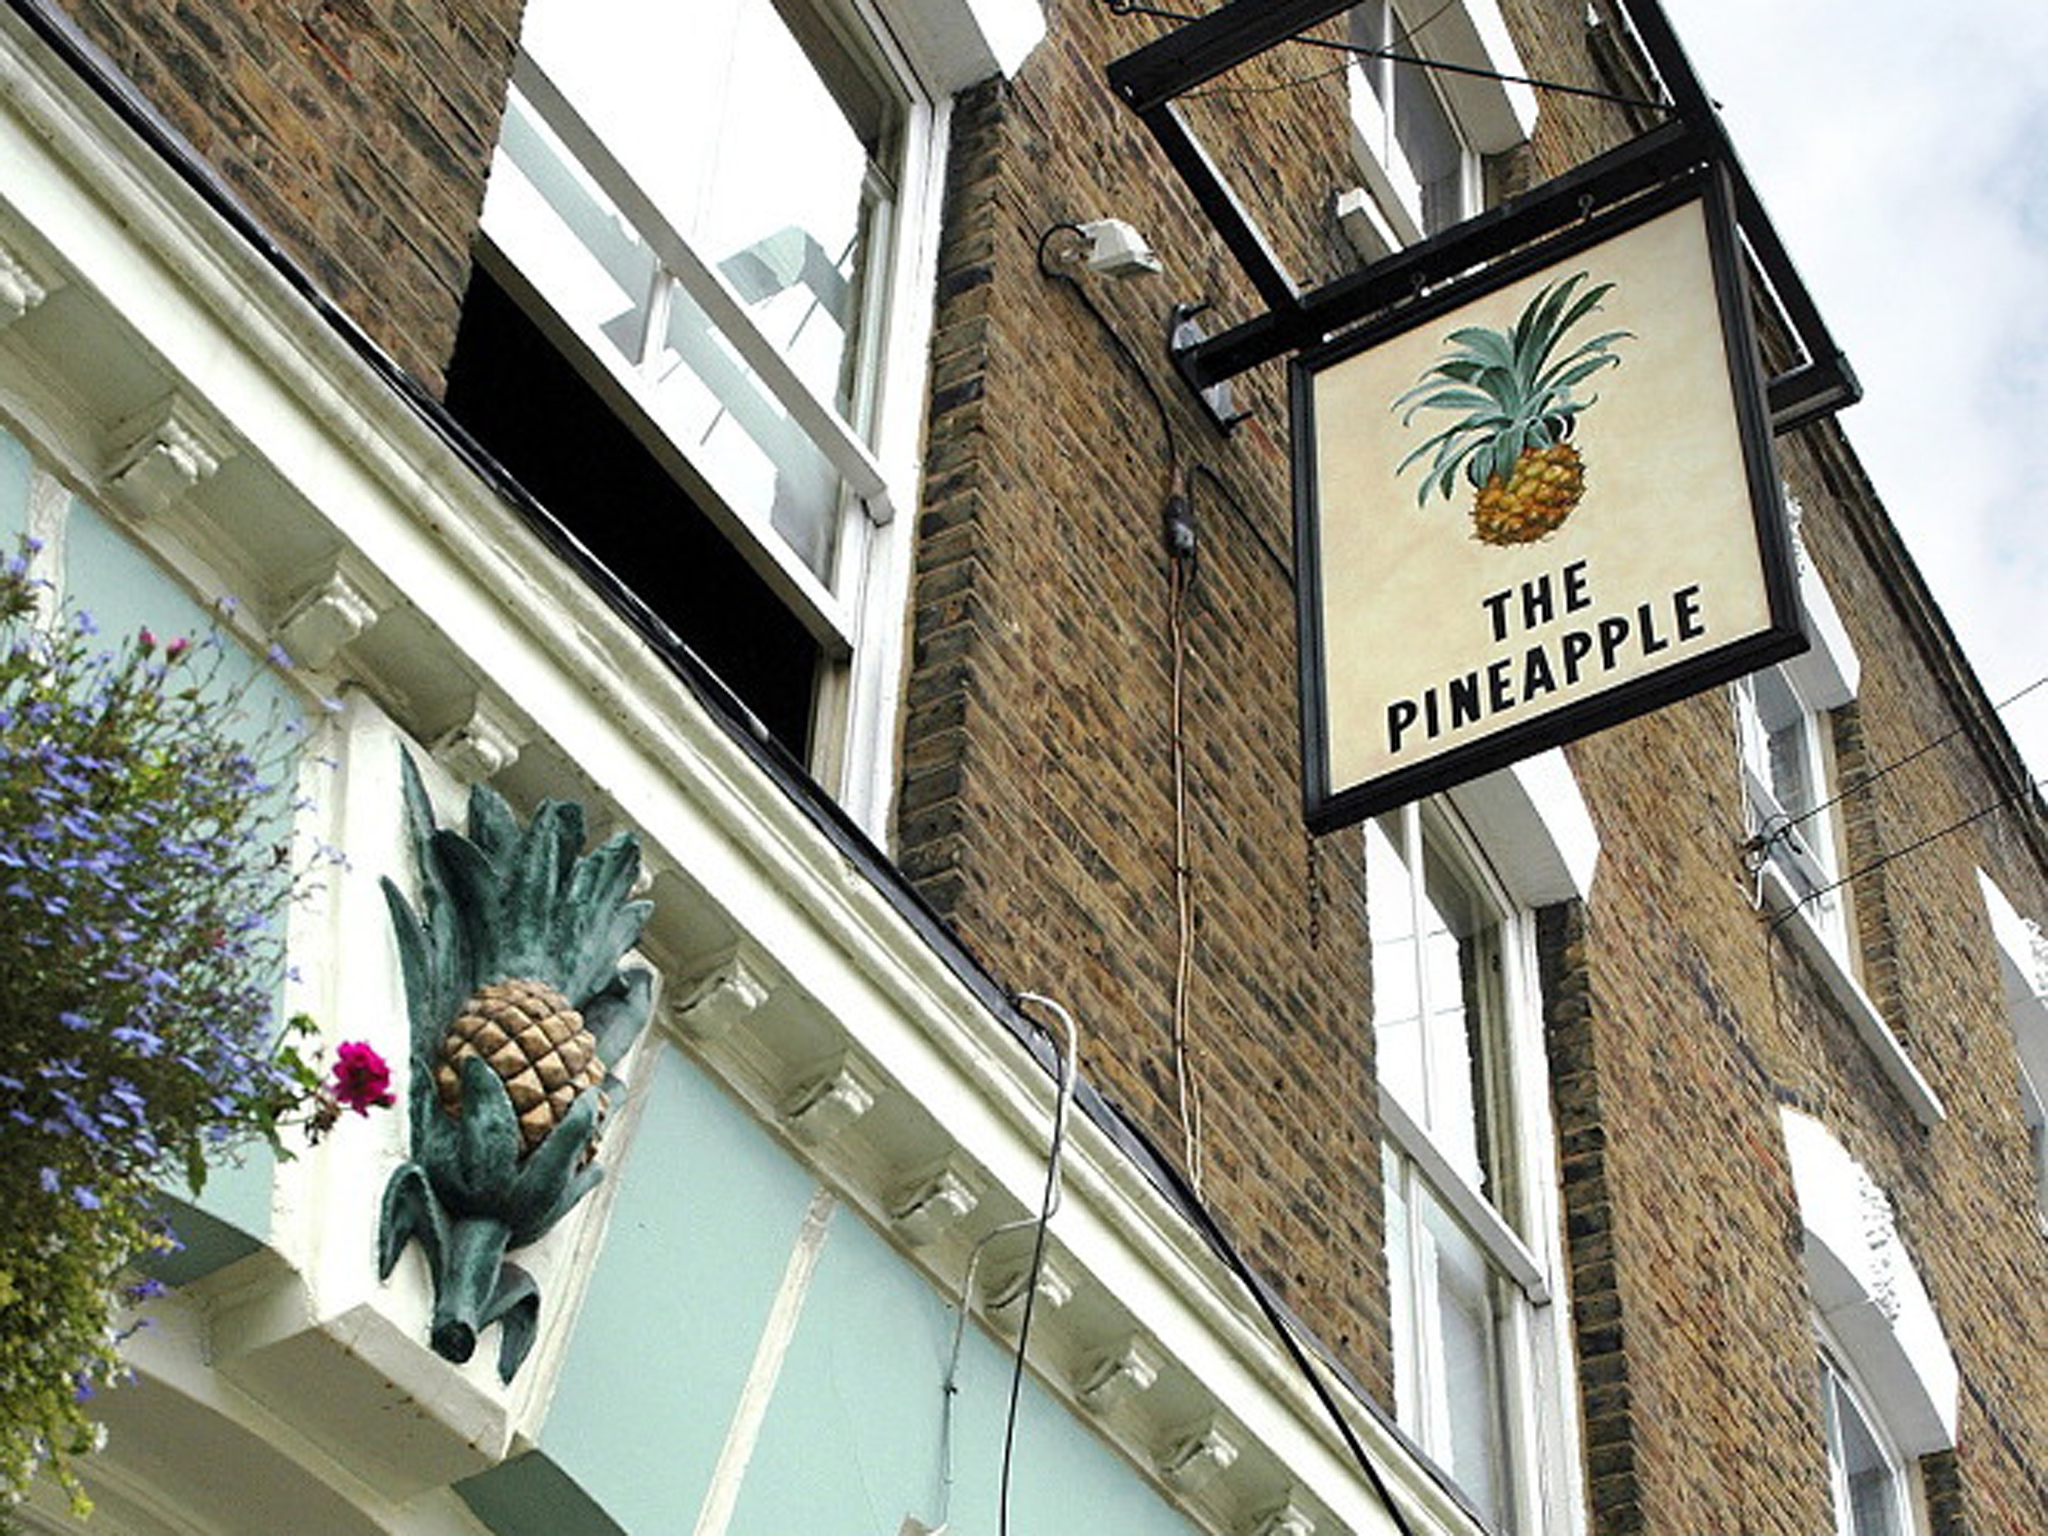 The 100 best bars and pubs in London - The Pineapple, Kentish Town